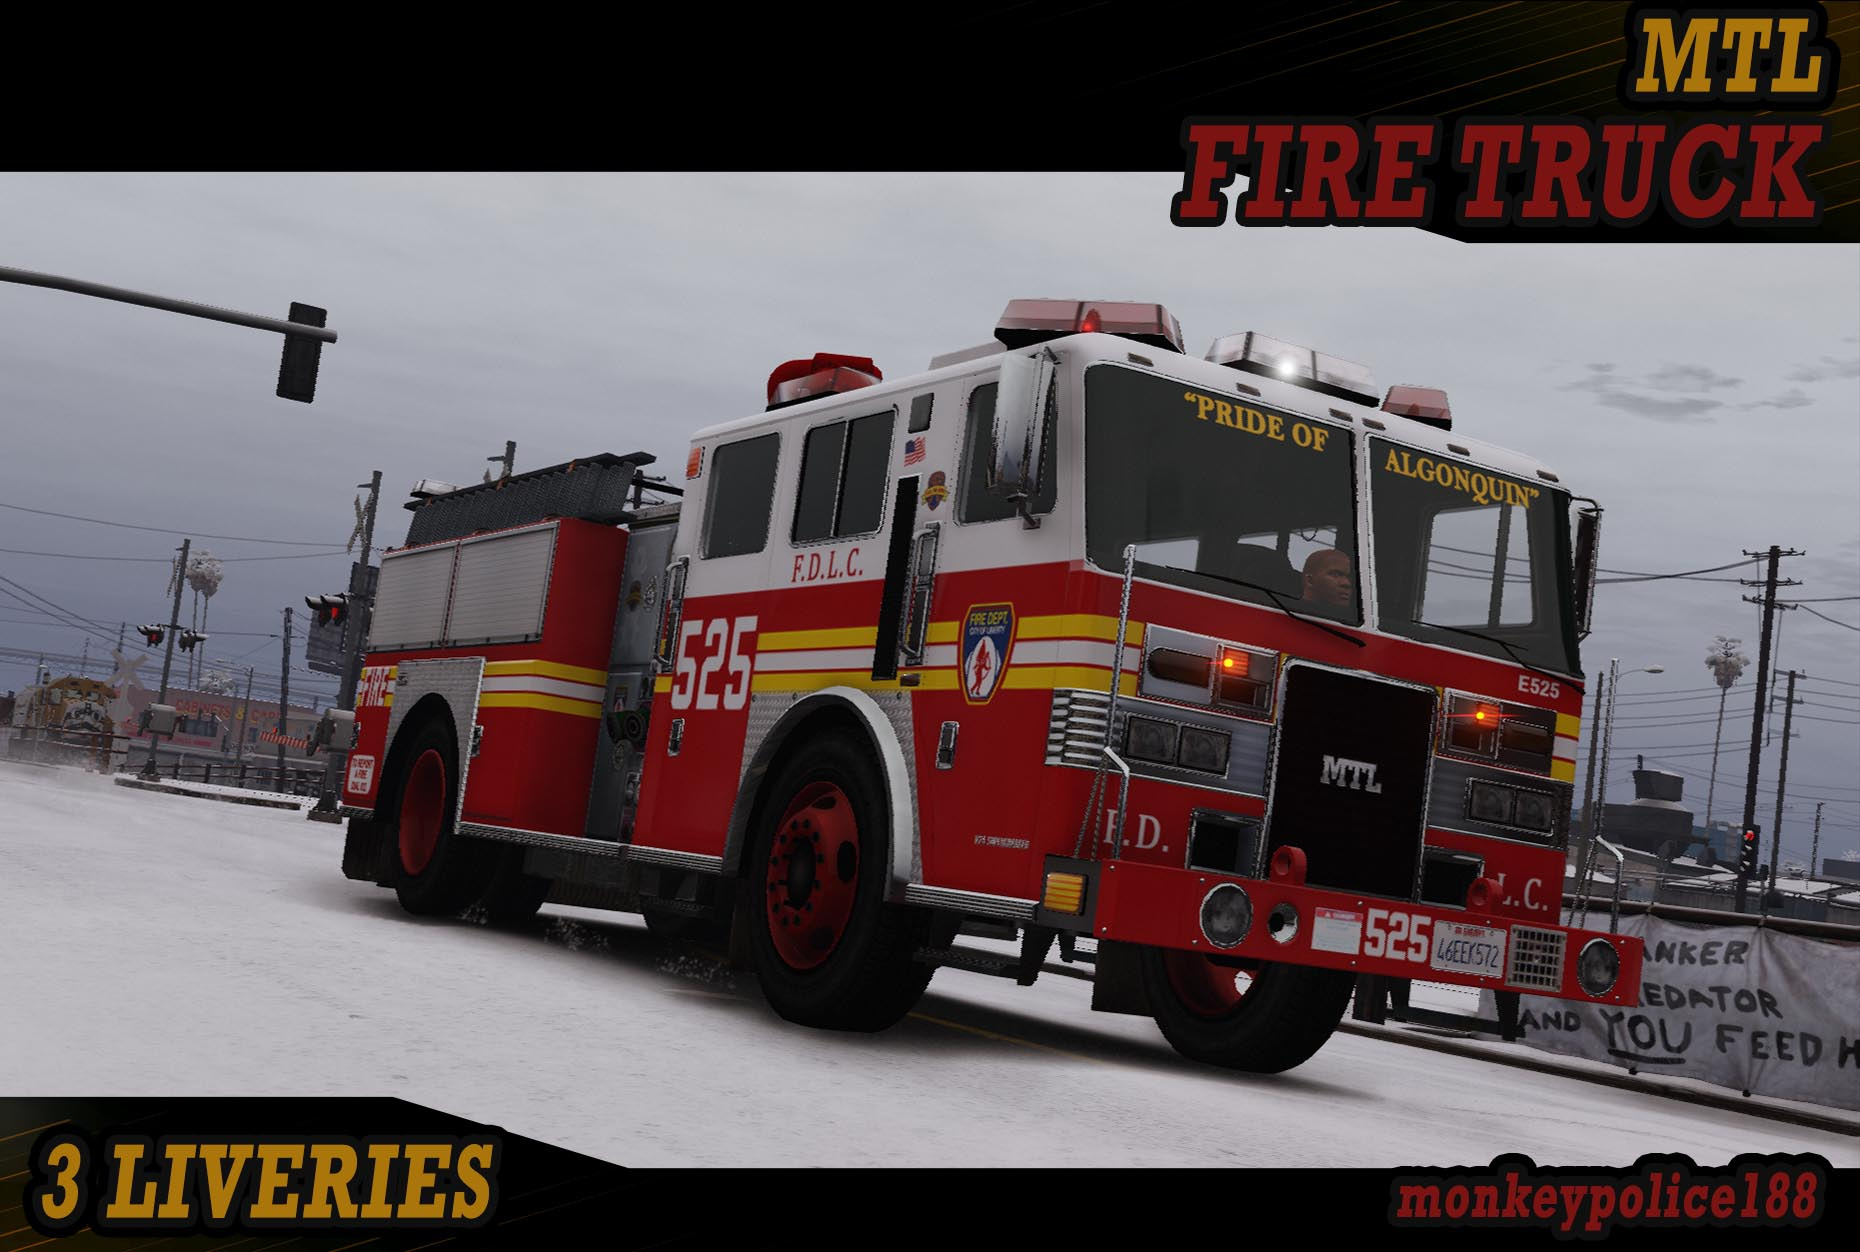 Fdlc mtl fire truck gta iv style improved add on liveries 0d649b fdlctruck maxwellsz